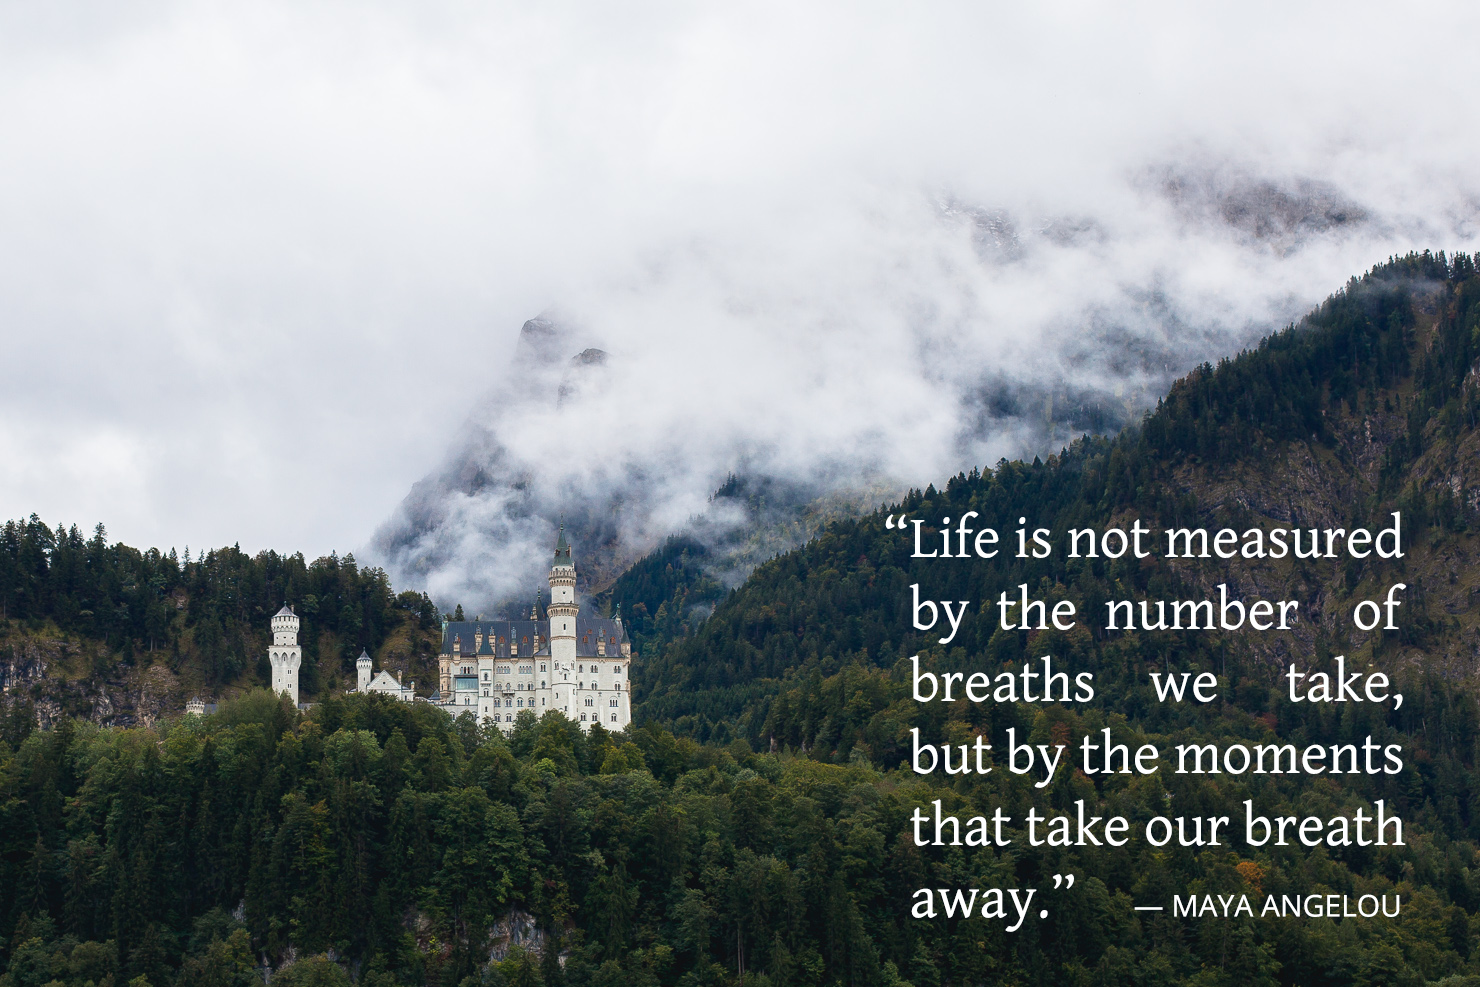 20 lesser-known travel quotes to fuel your wanderlust